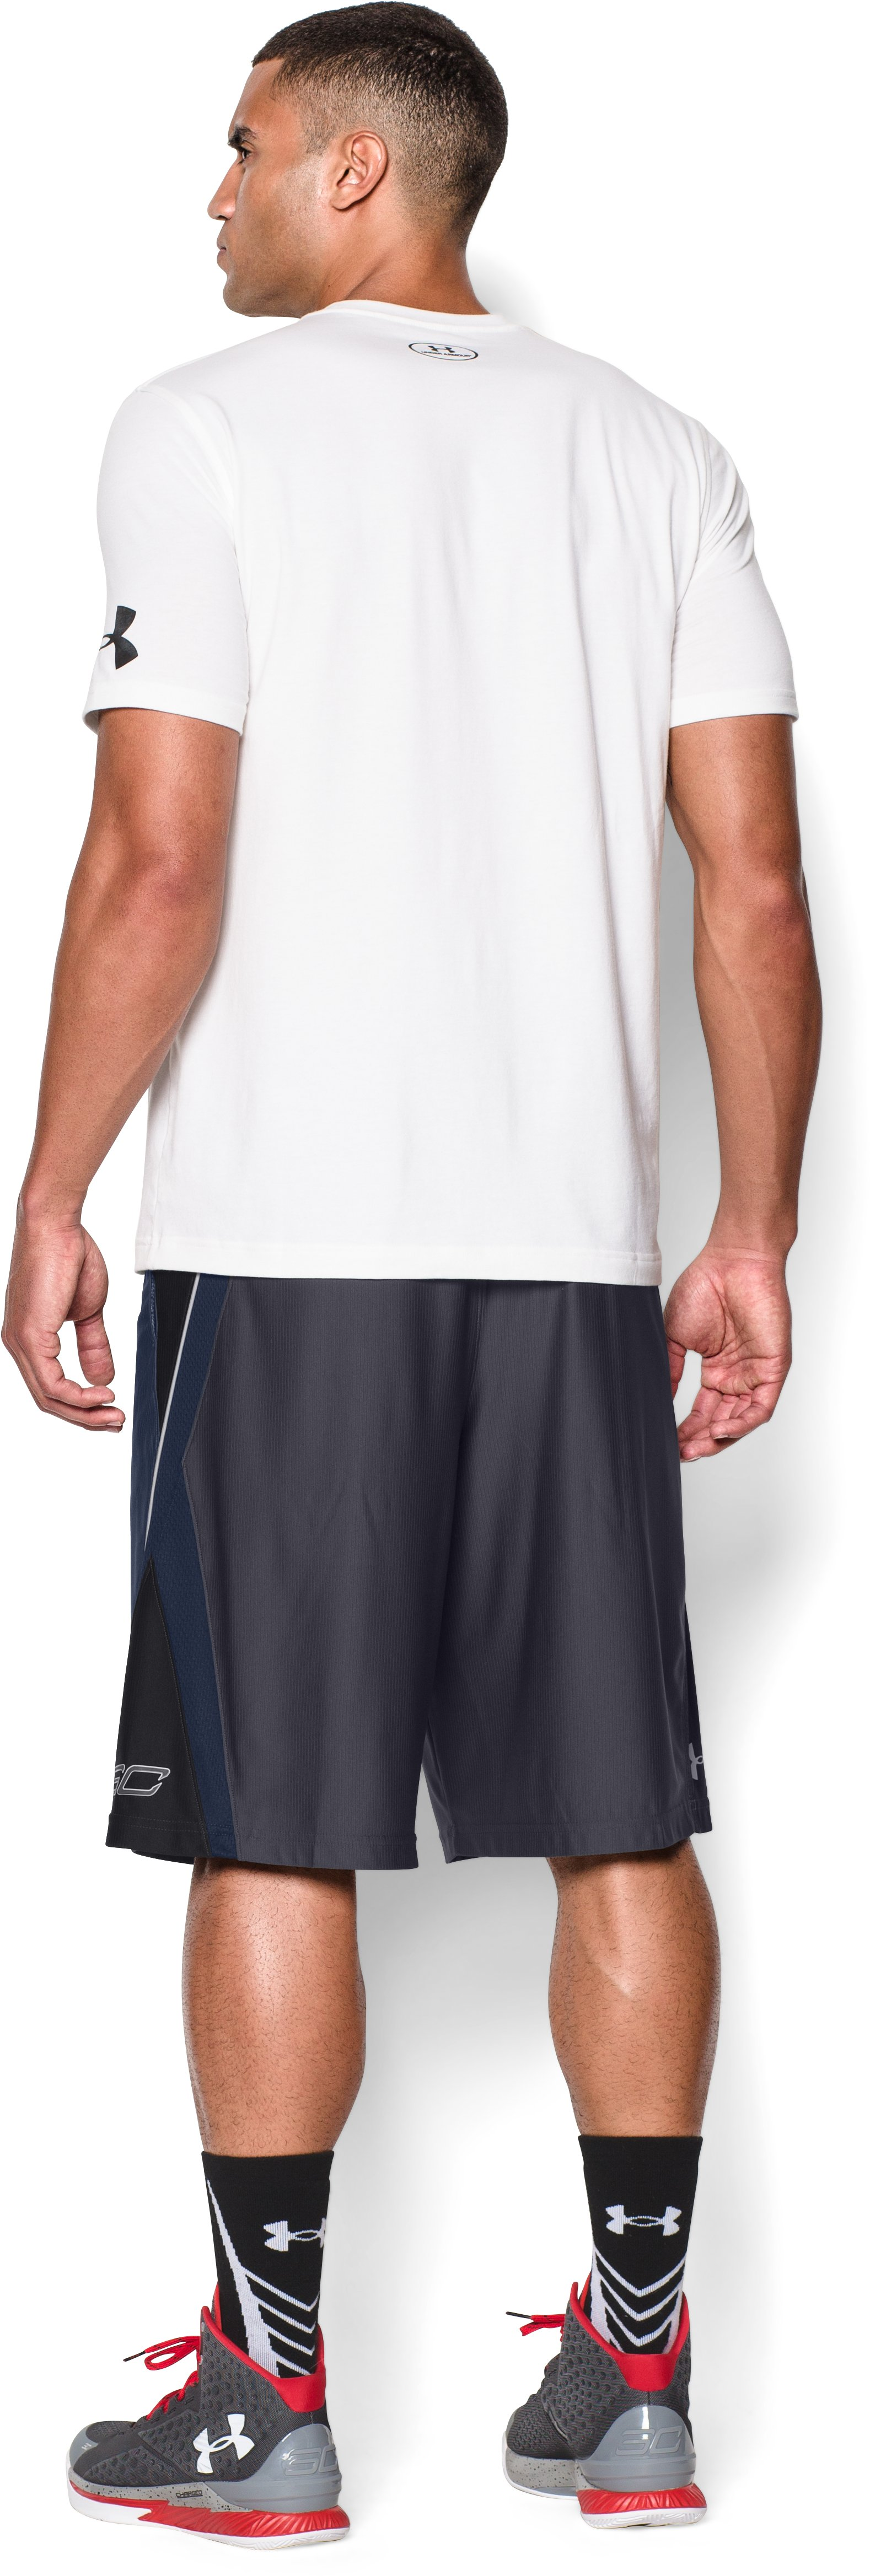 Men's SC30 Court Vision Basketball Shorts, STEALTH GRAY, Back